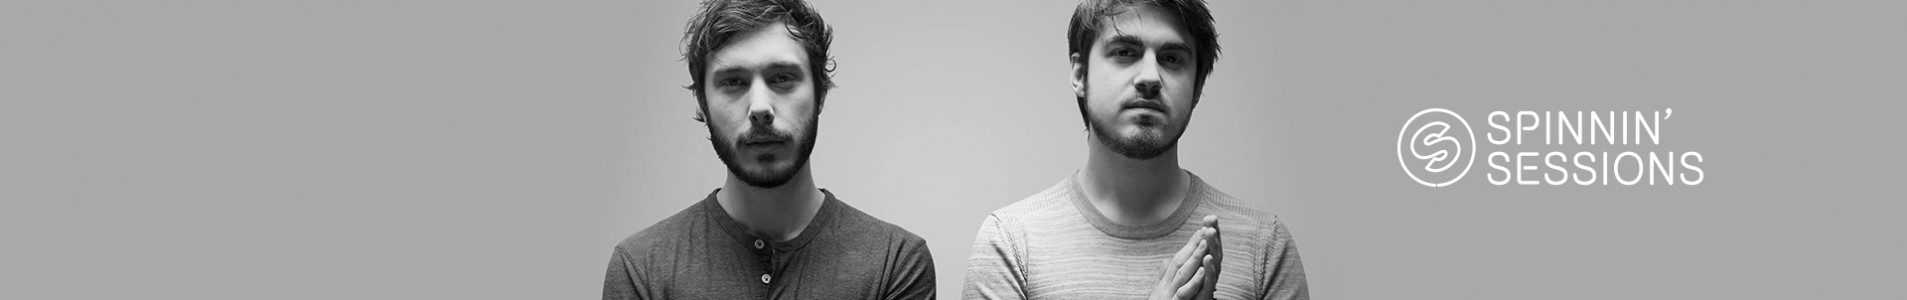 Check out Spinnin' Sessions with Vicetone